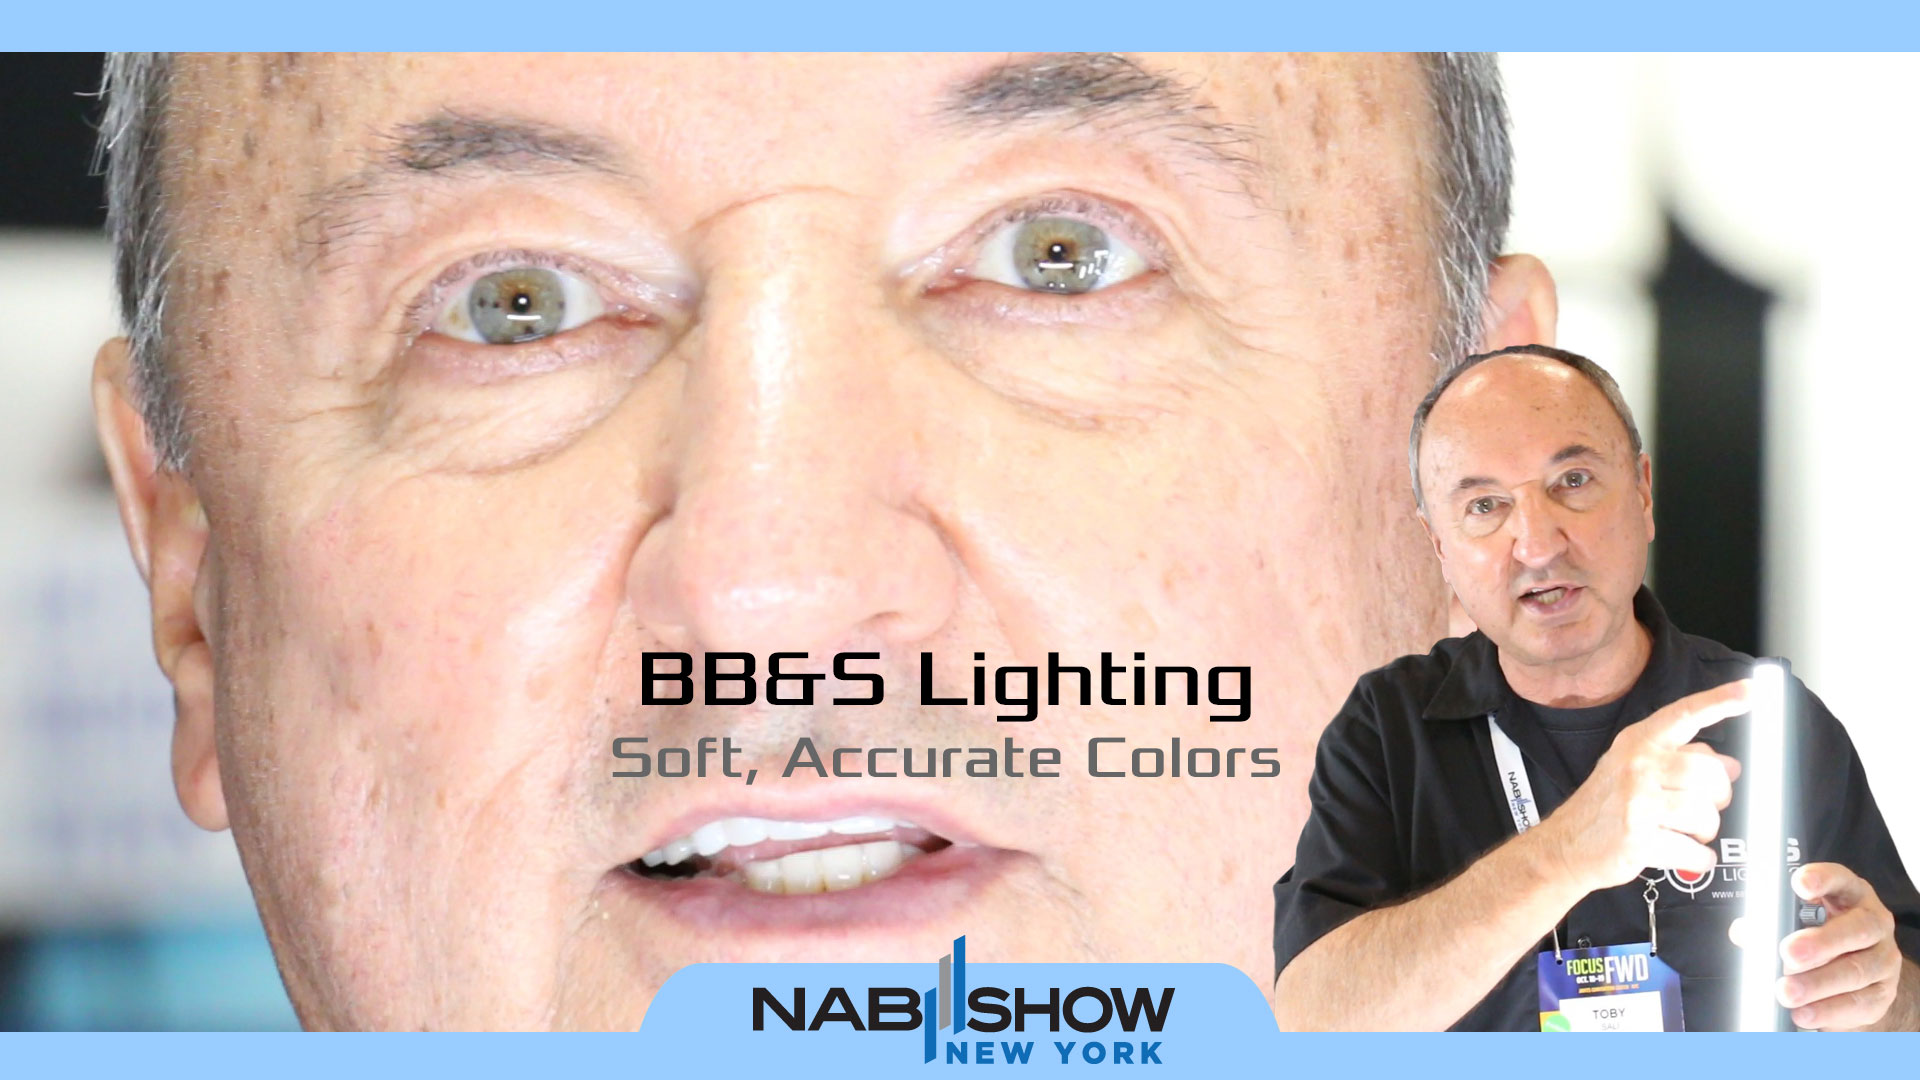 BB&S Lighting